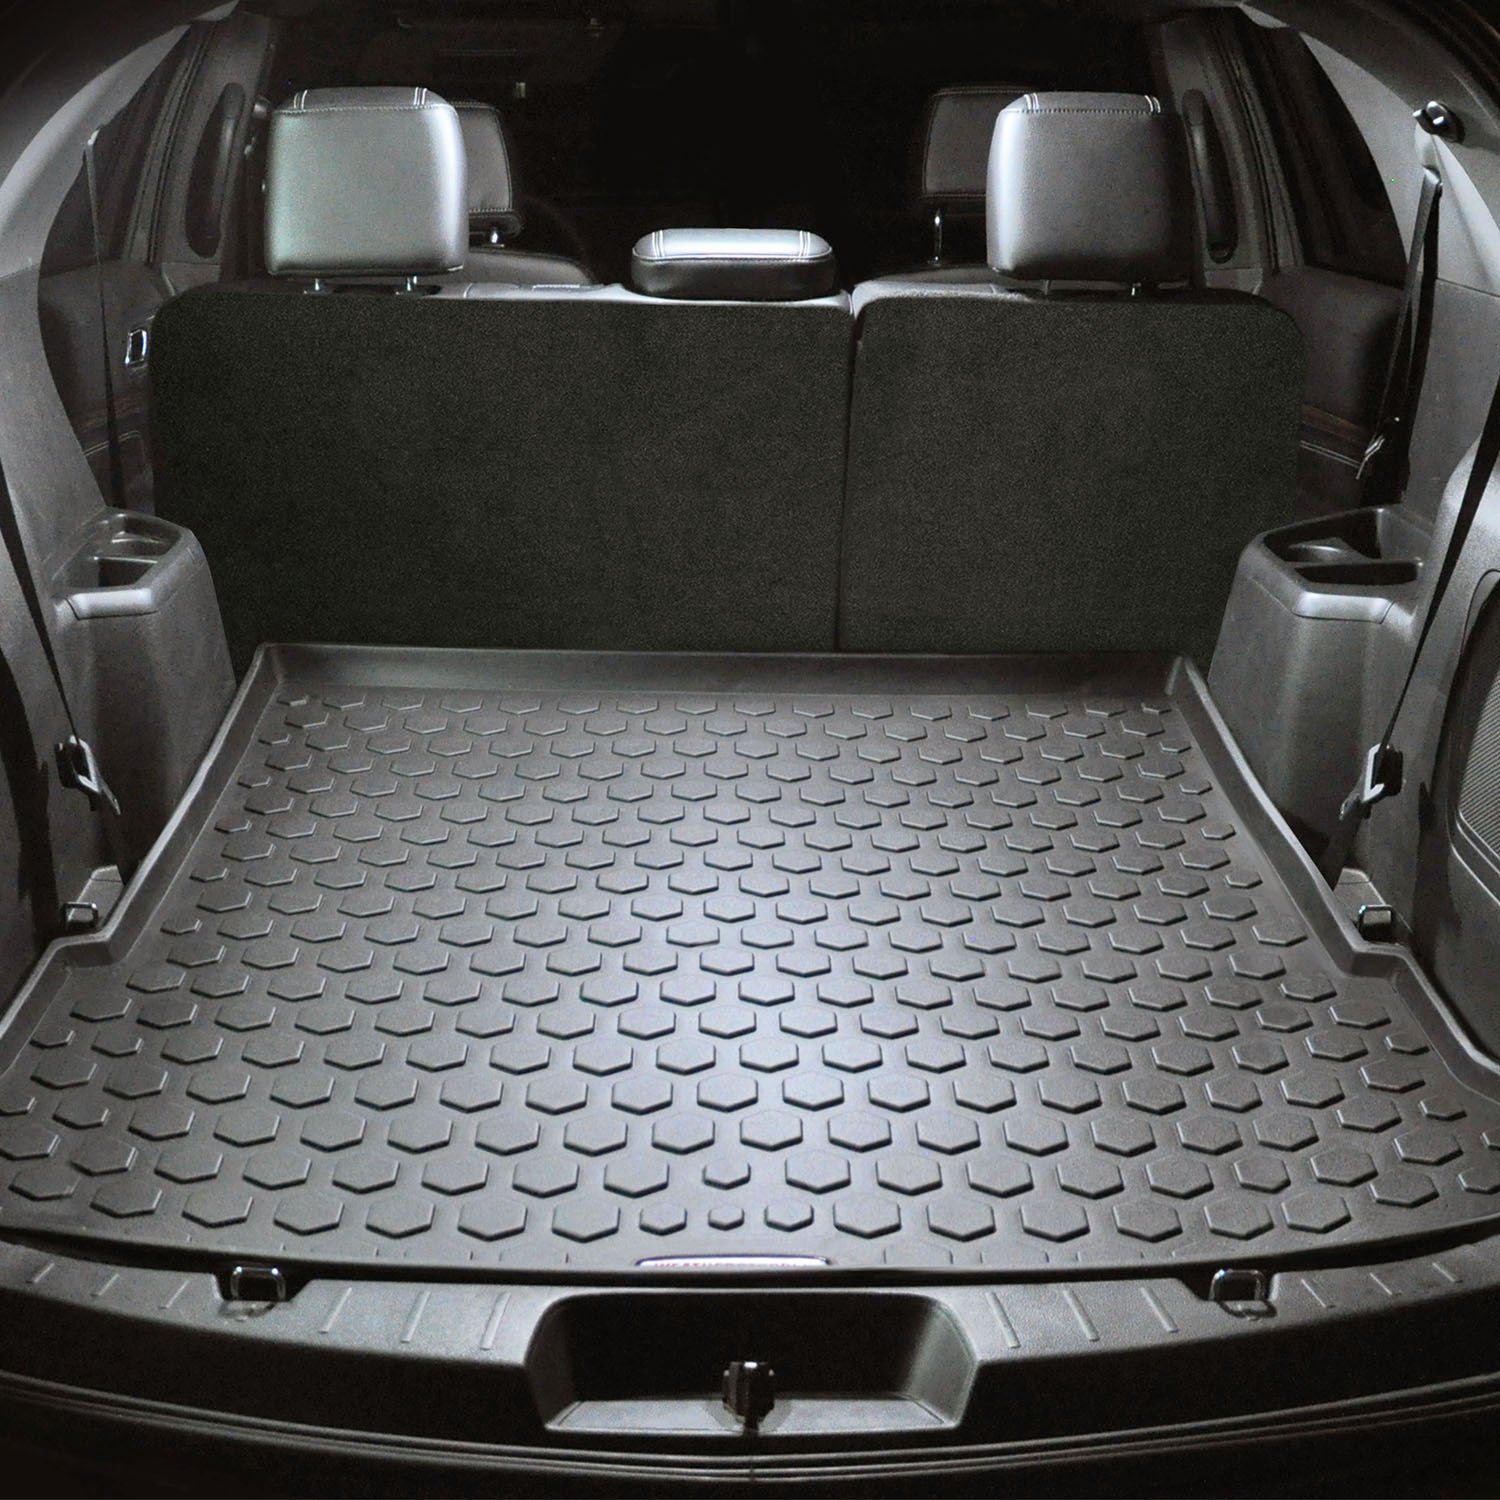 Enjoyable 2011 2018 Ford Explorer Cargo Mat By Elements Defender Guaranteed Perfect Fit Heavy Duty All Weather Trunk Cargo Liner 100 Weather Proof Dailytribune Chair Design For Home Dailytribuneorg